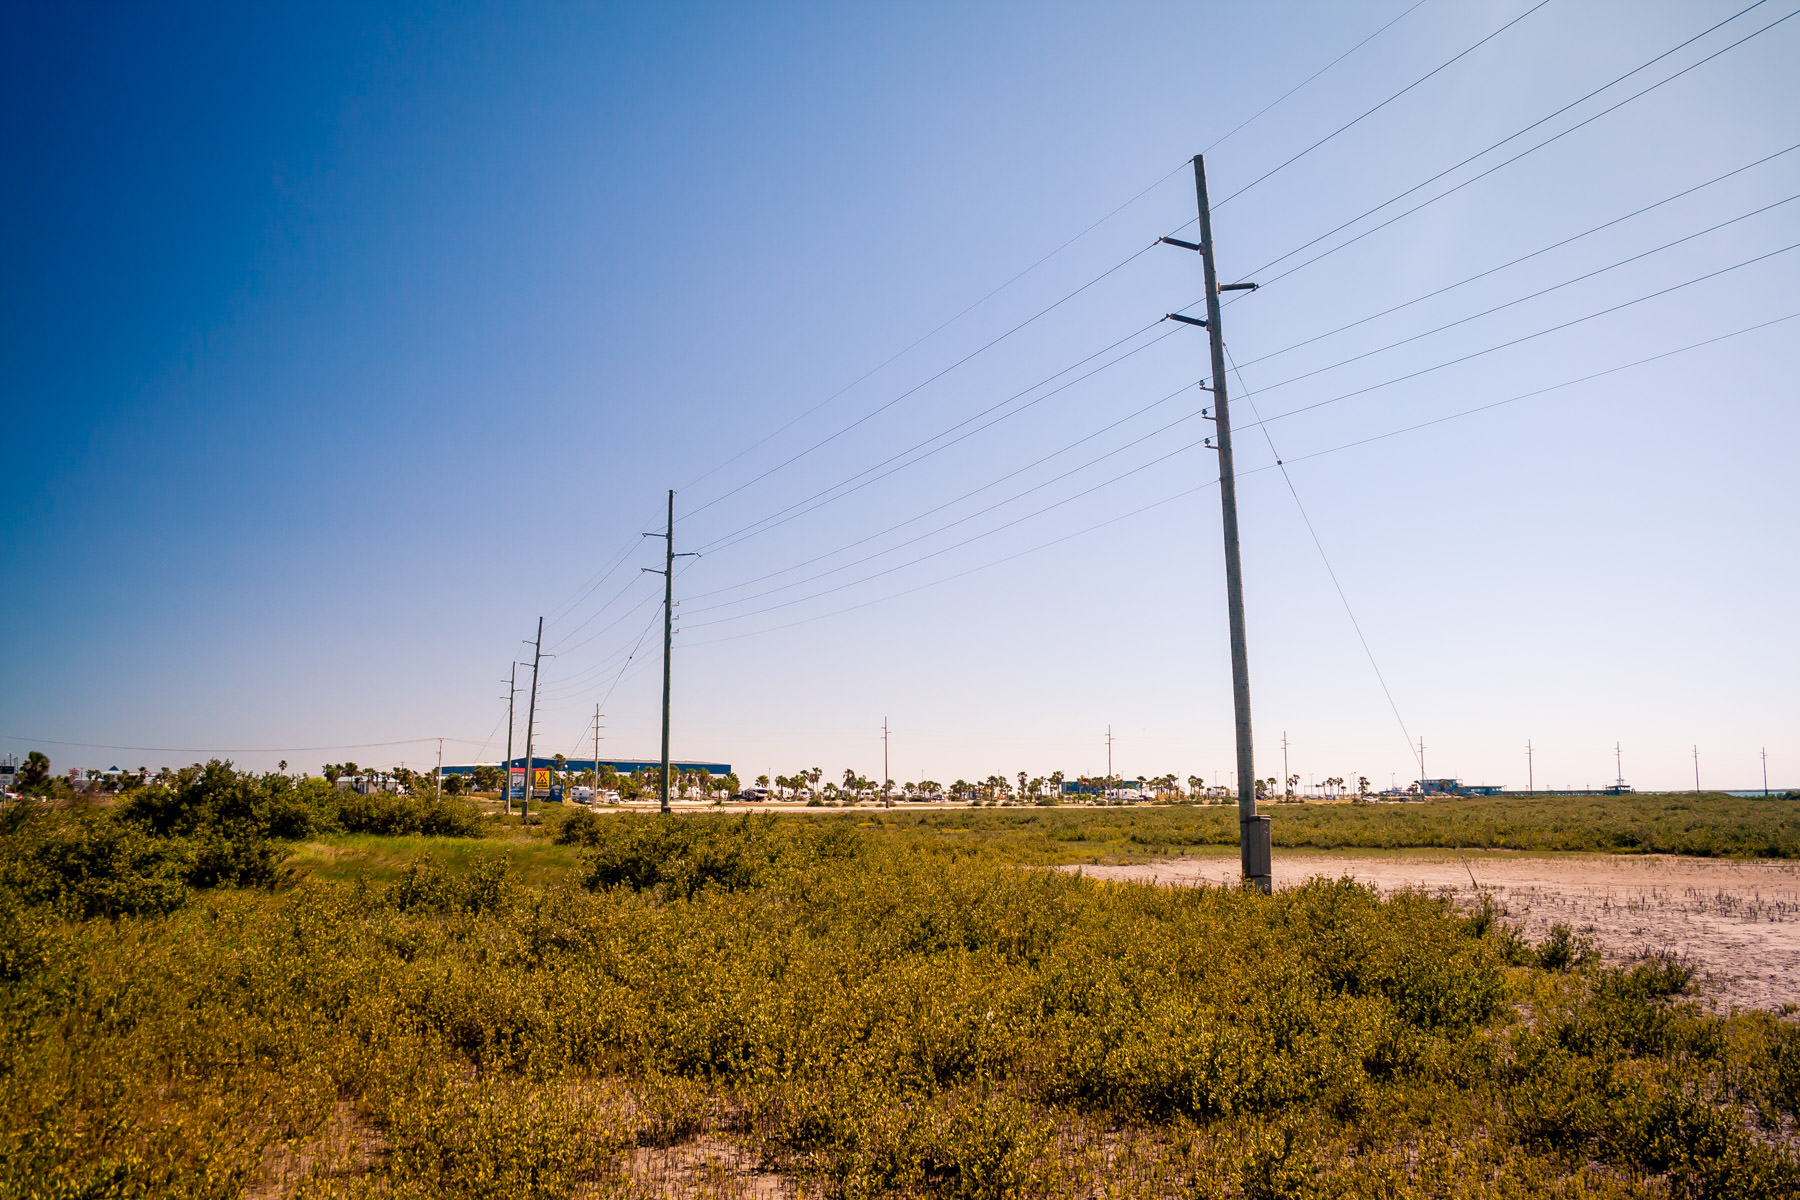 Power lines lead to a lonely convenience store on South Padre Island, Texas.